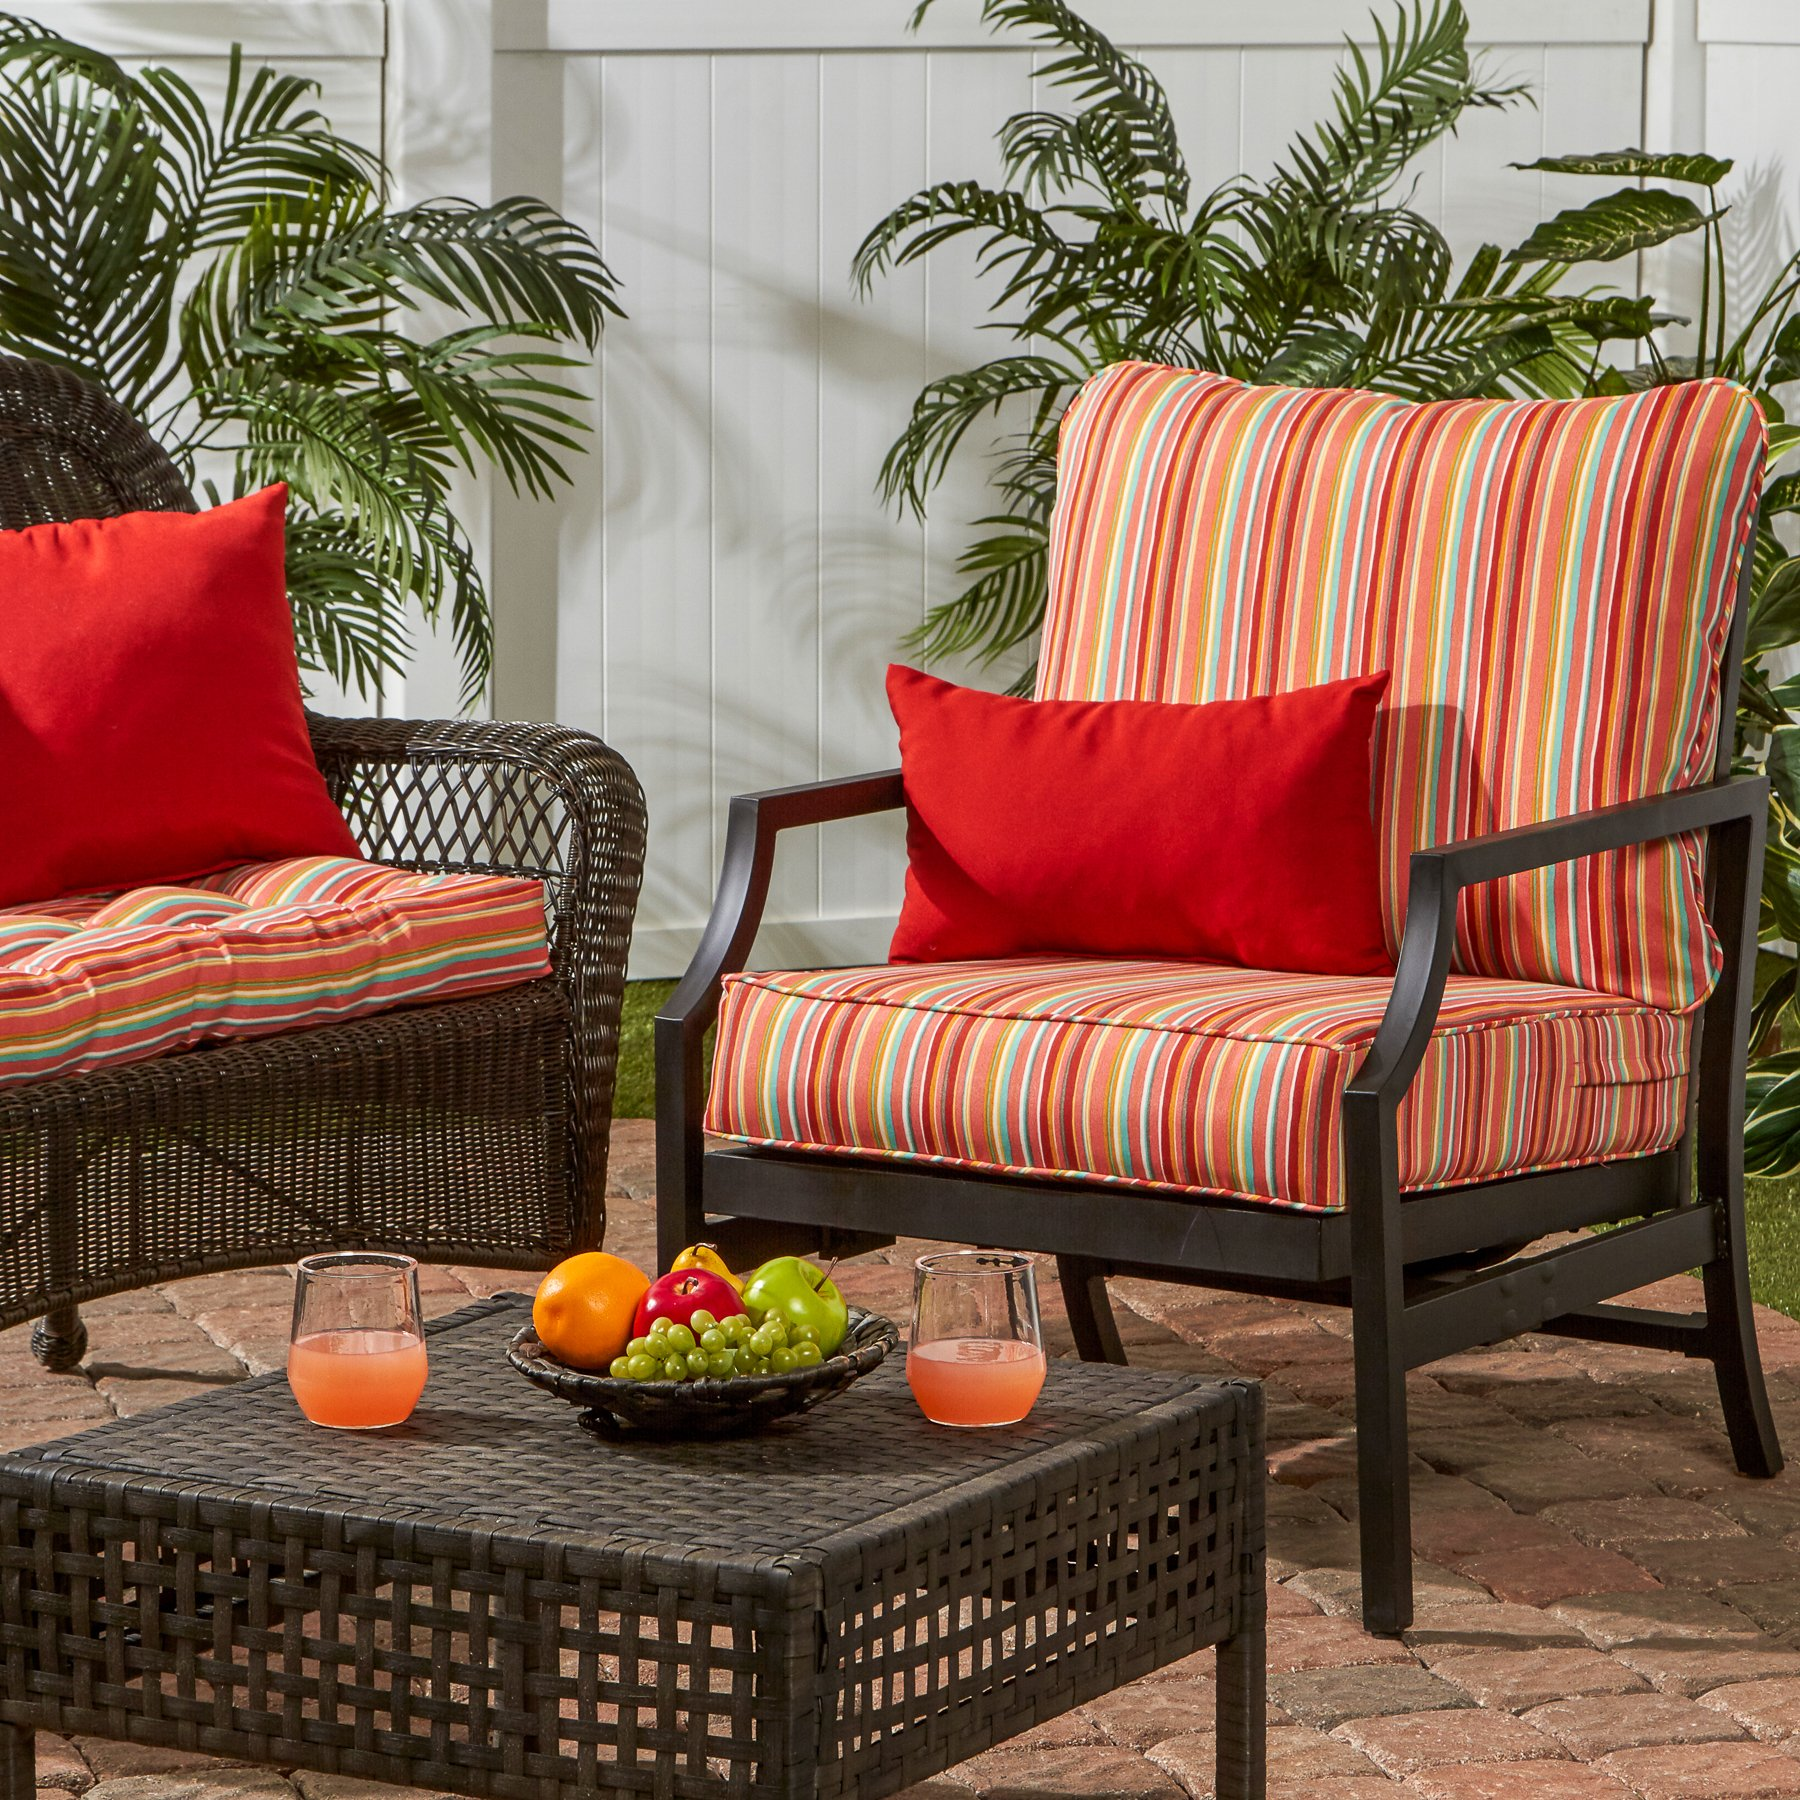 Greendale Home Fashions Deep Seat Cushion Set in Coastal Stripe, Watermelon by Greendale Home Fashions (Image #4)